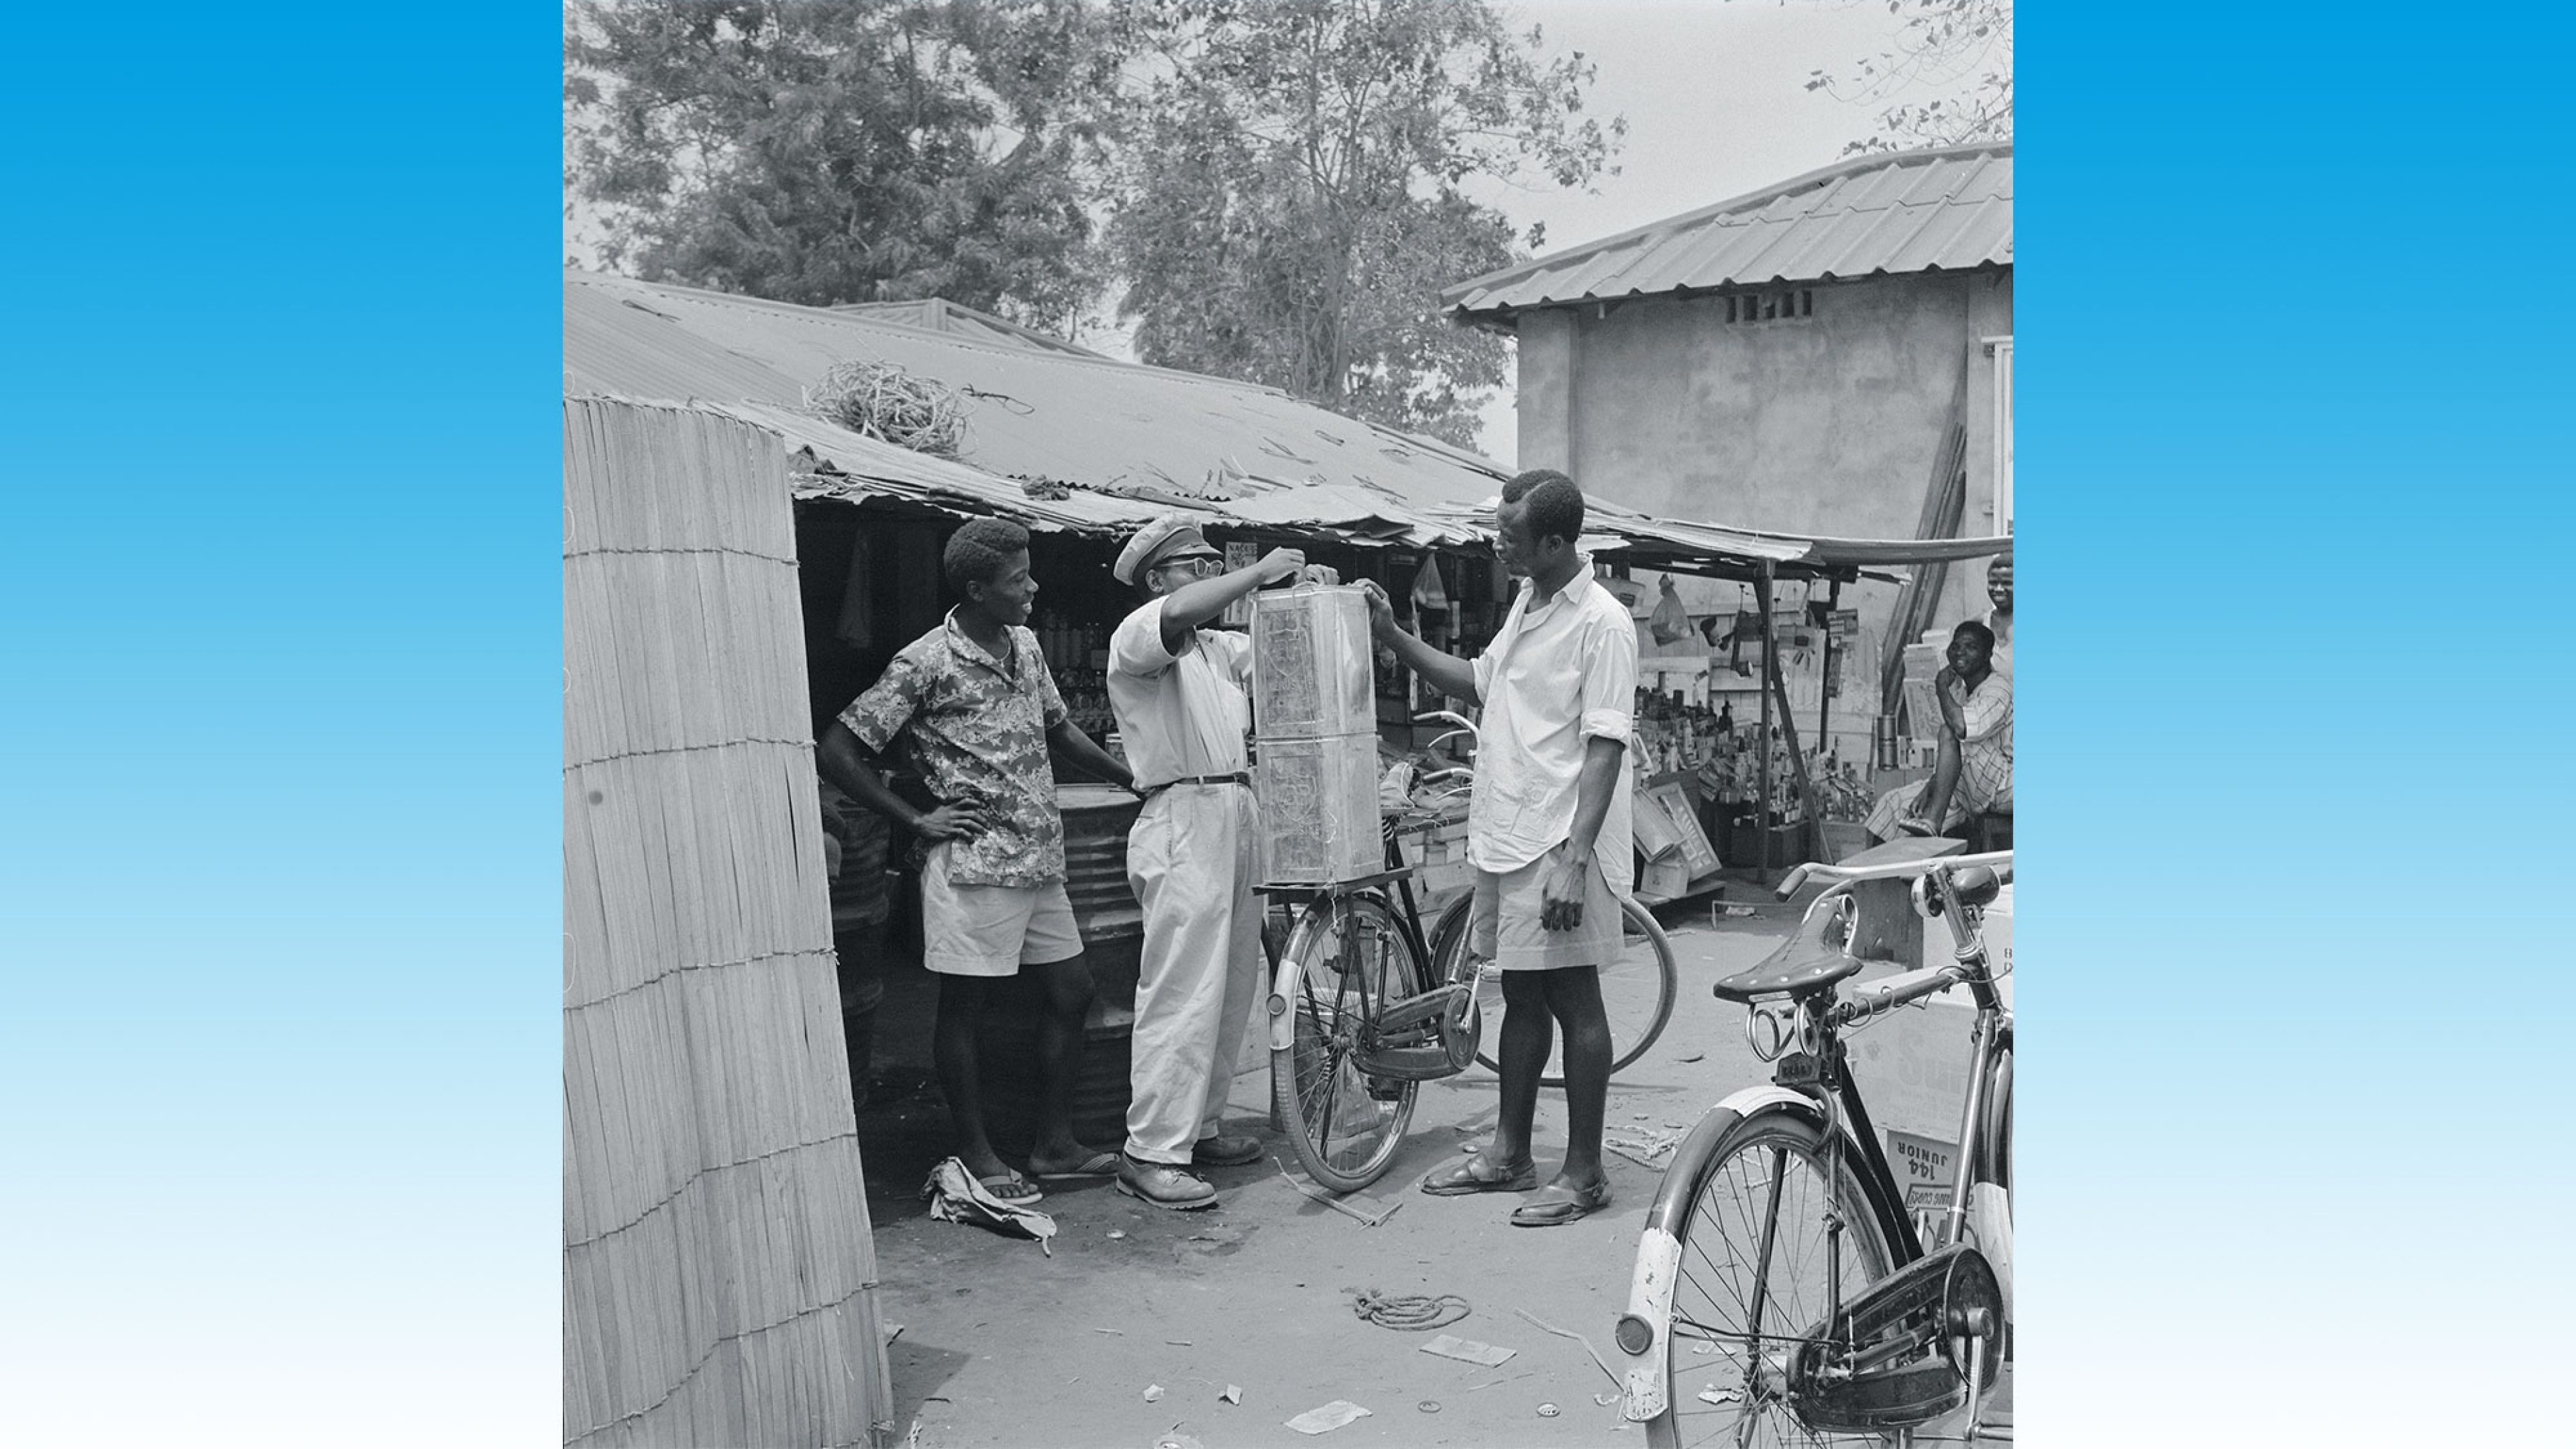 A BP kerosene stall at Port Harcourt's local market, Nigeria, 1961. A trader secures purchases onto the customer's bike